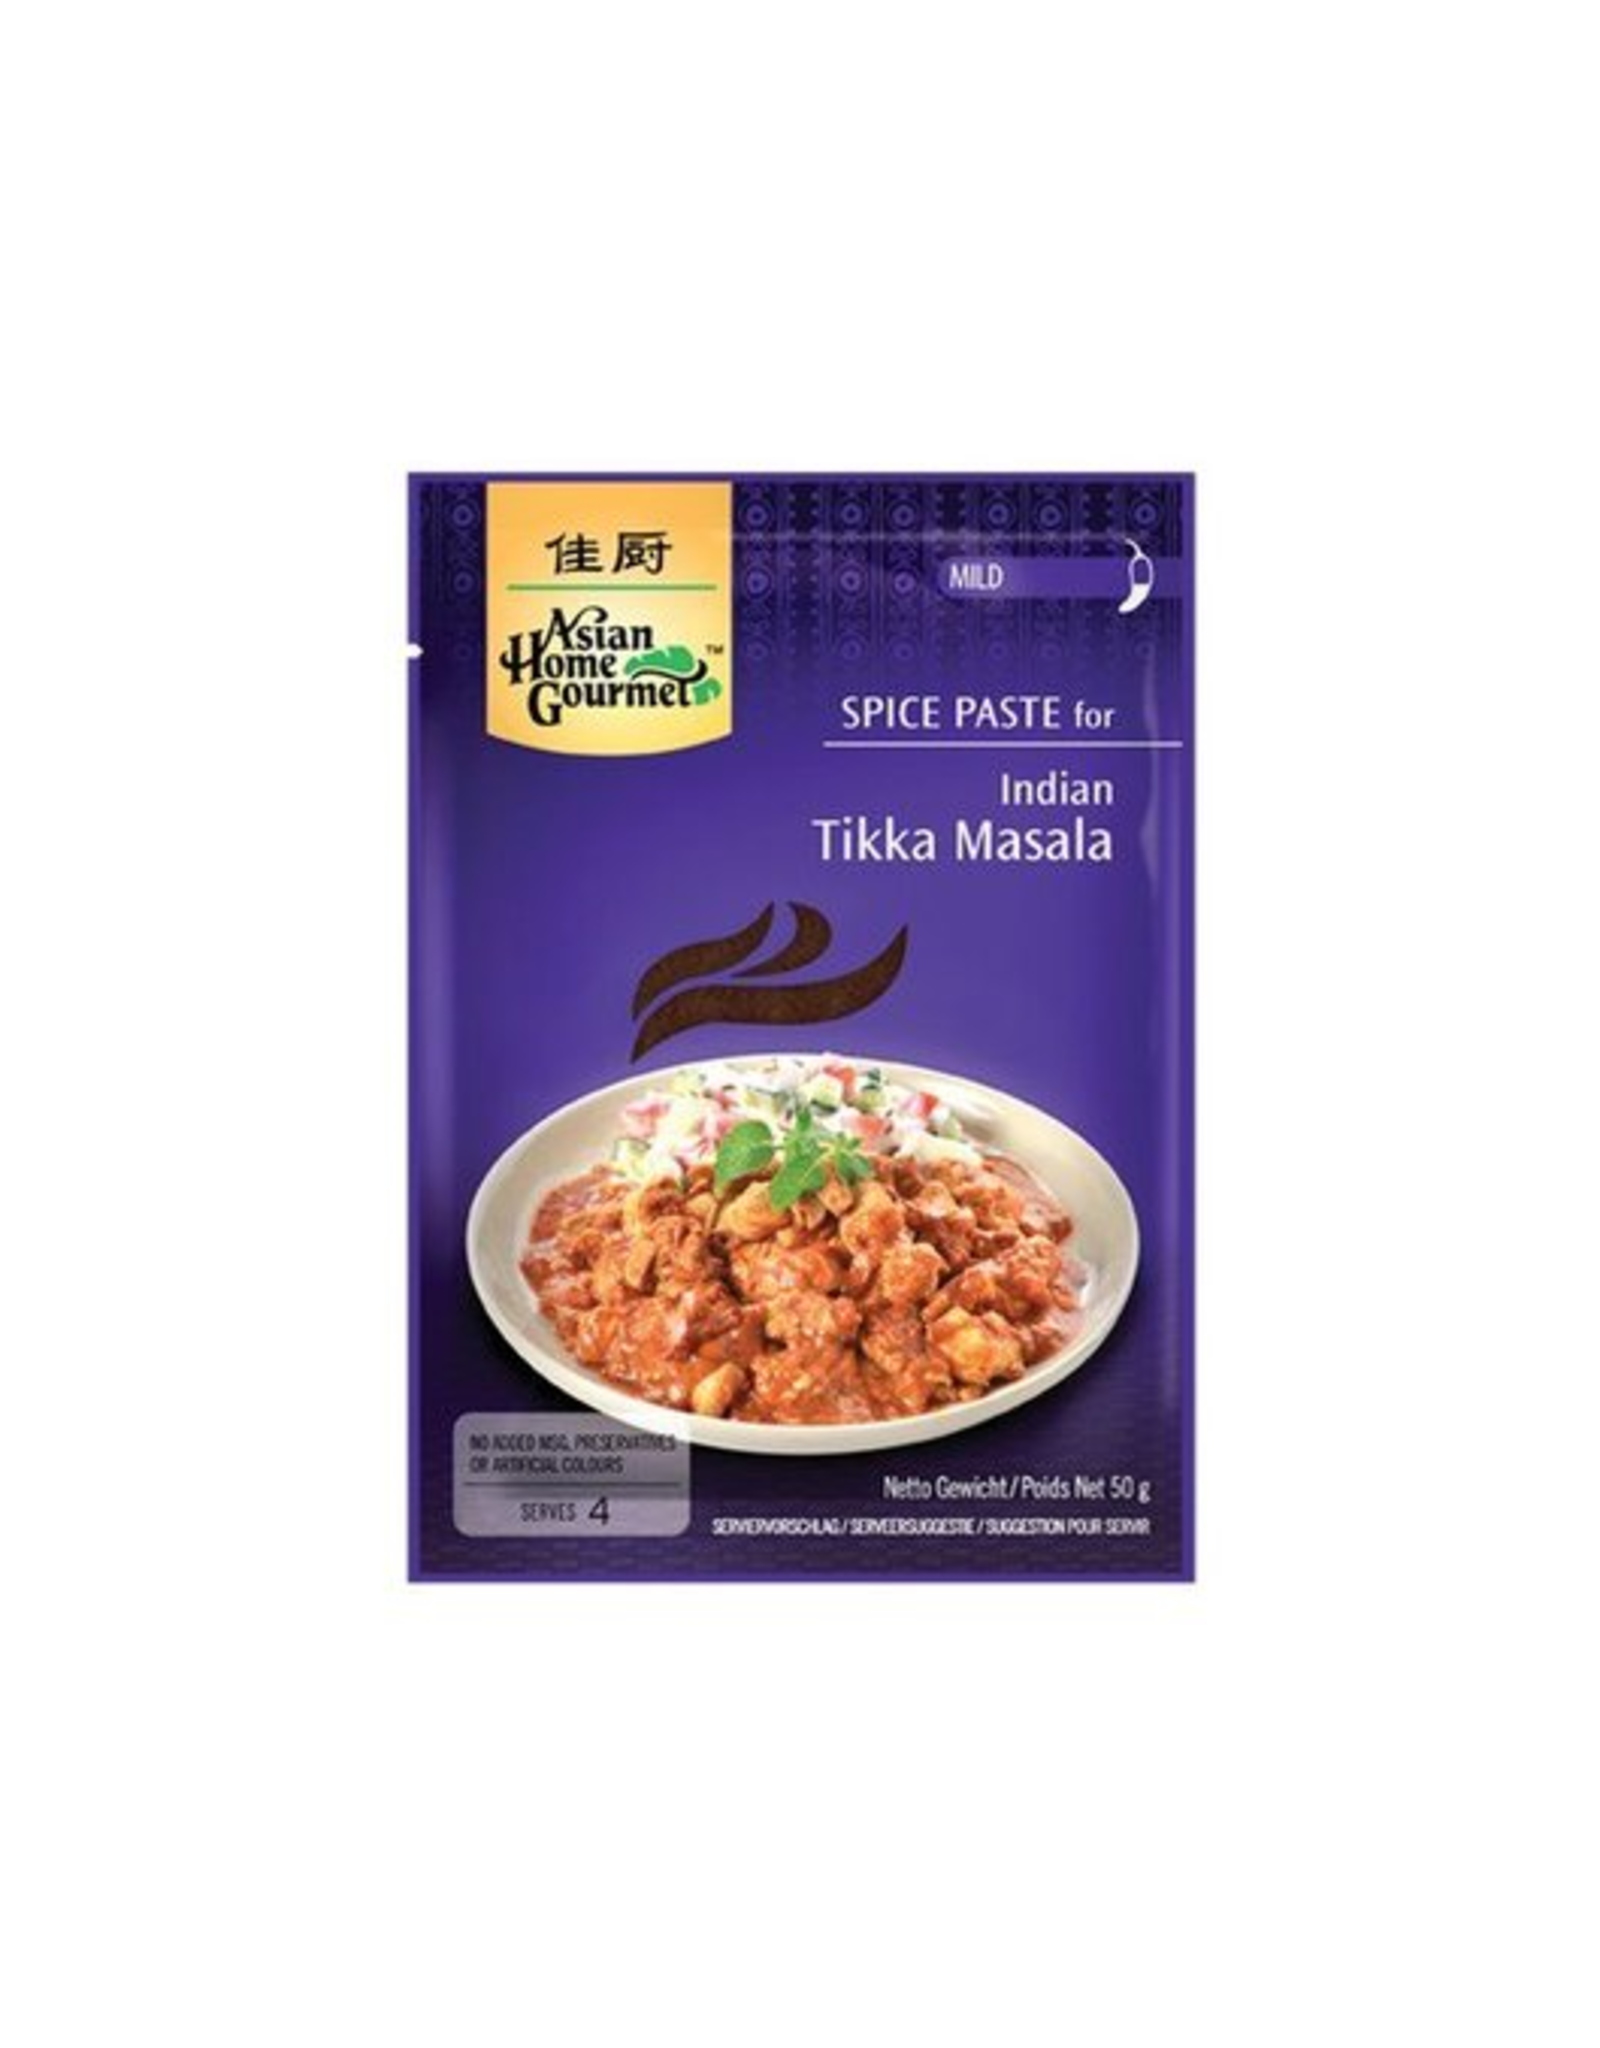 Asian Home Gourmet Indian Tikka Masala